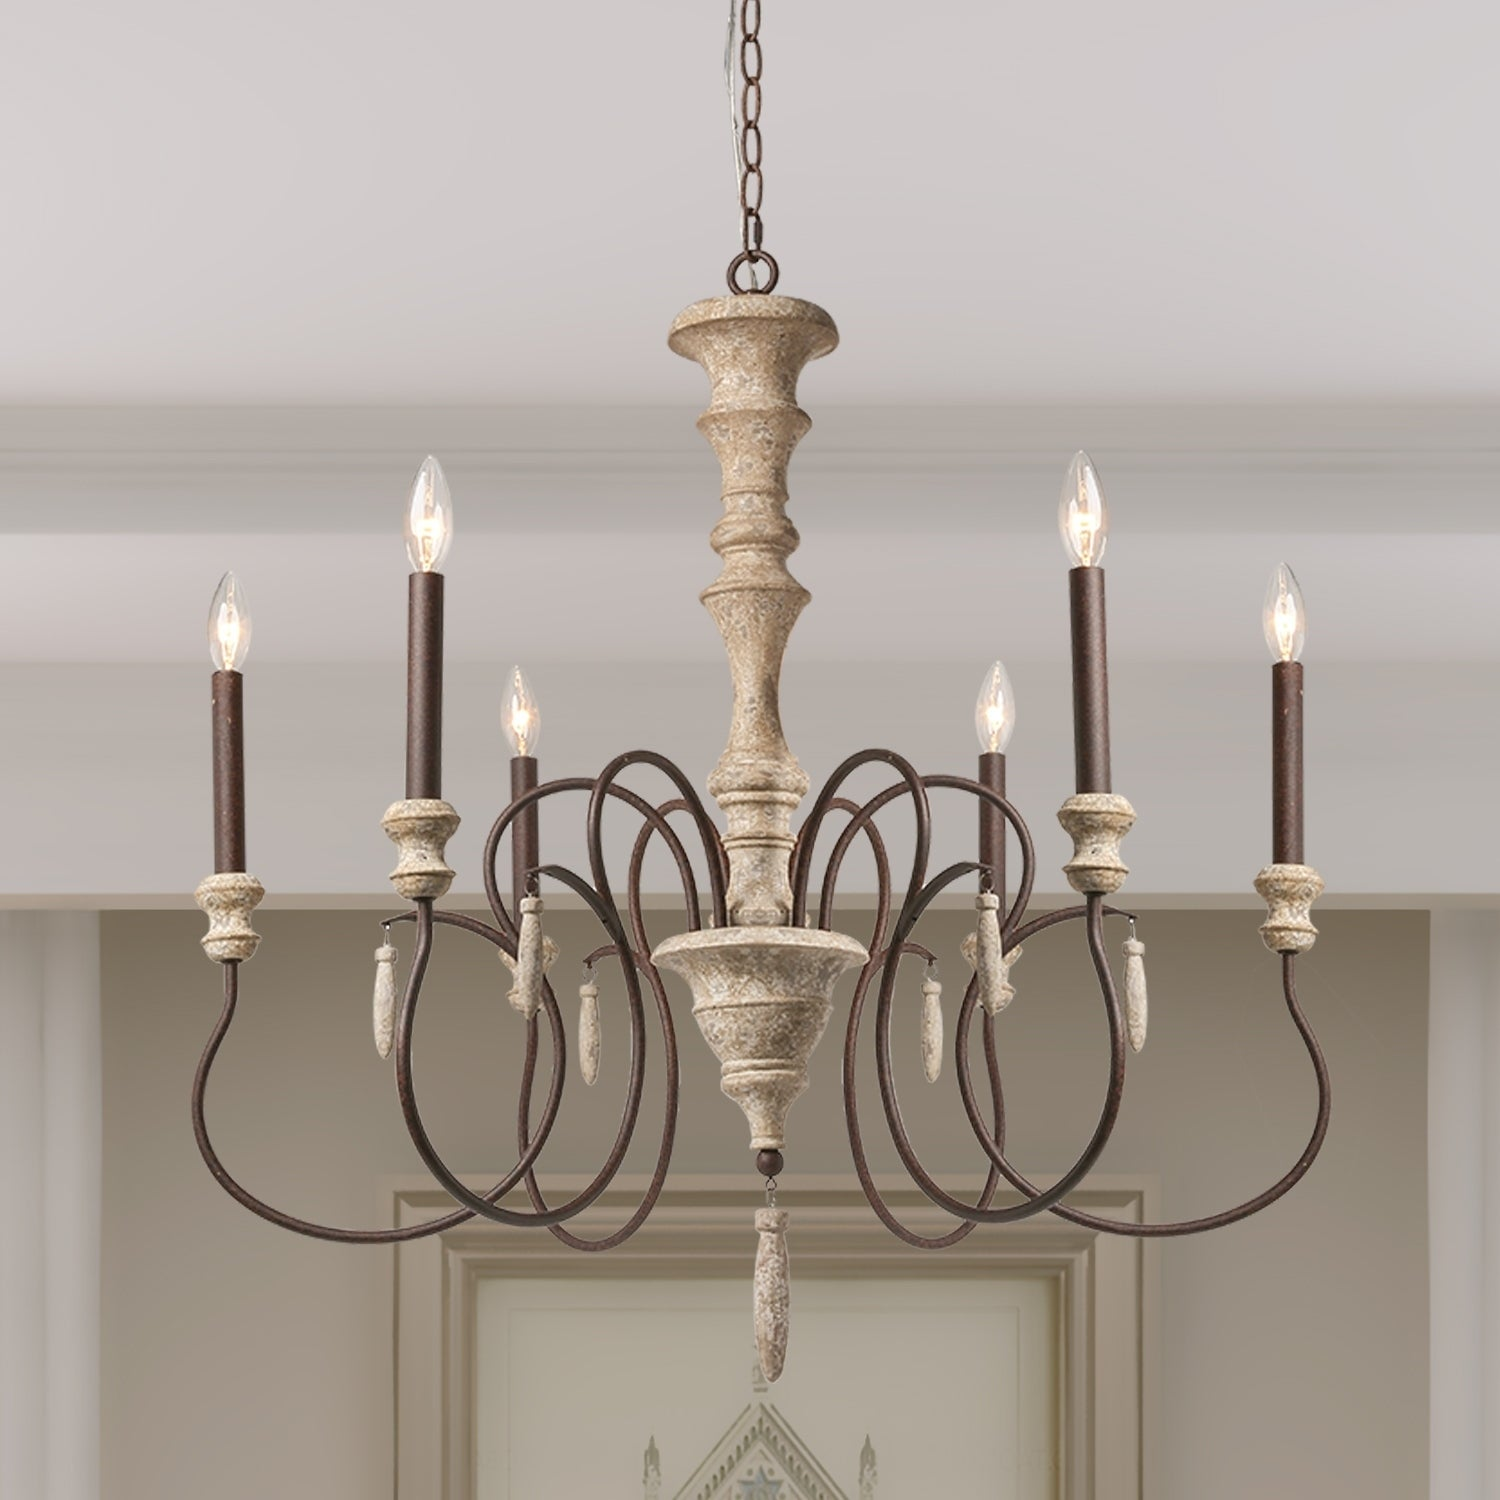 French Country Wooden Chandelier Lighting Fixture N A